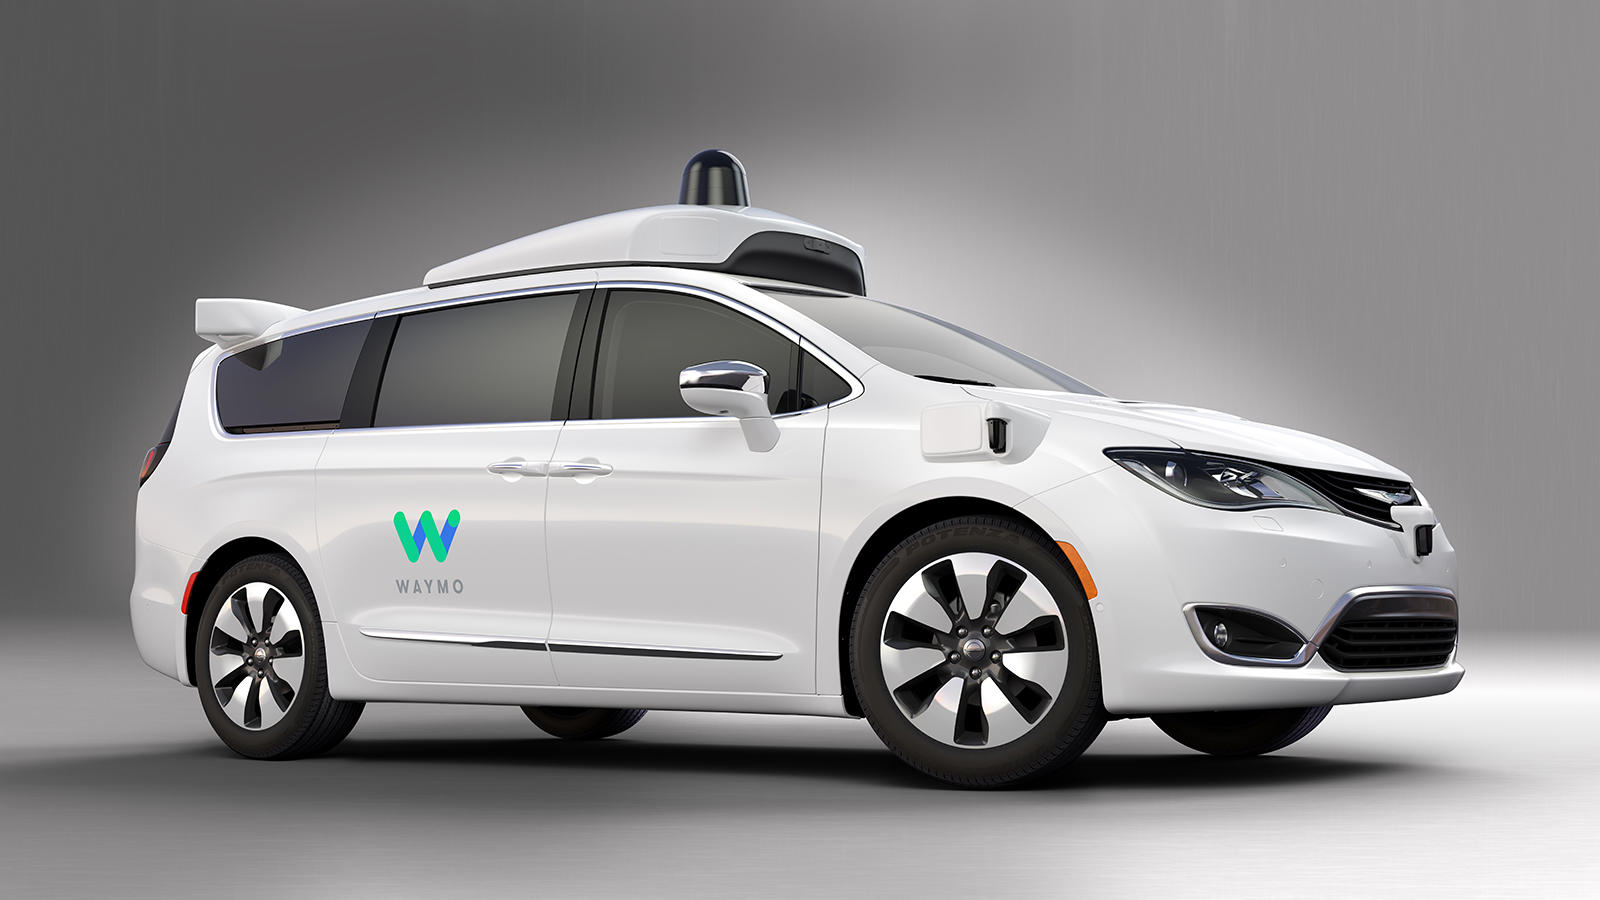 2017 Chrysler Pacifica Hybrid Minivan Equipped With Waymo S Fully Self Driving Technology